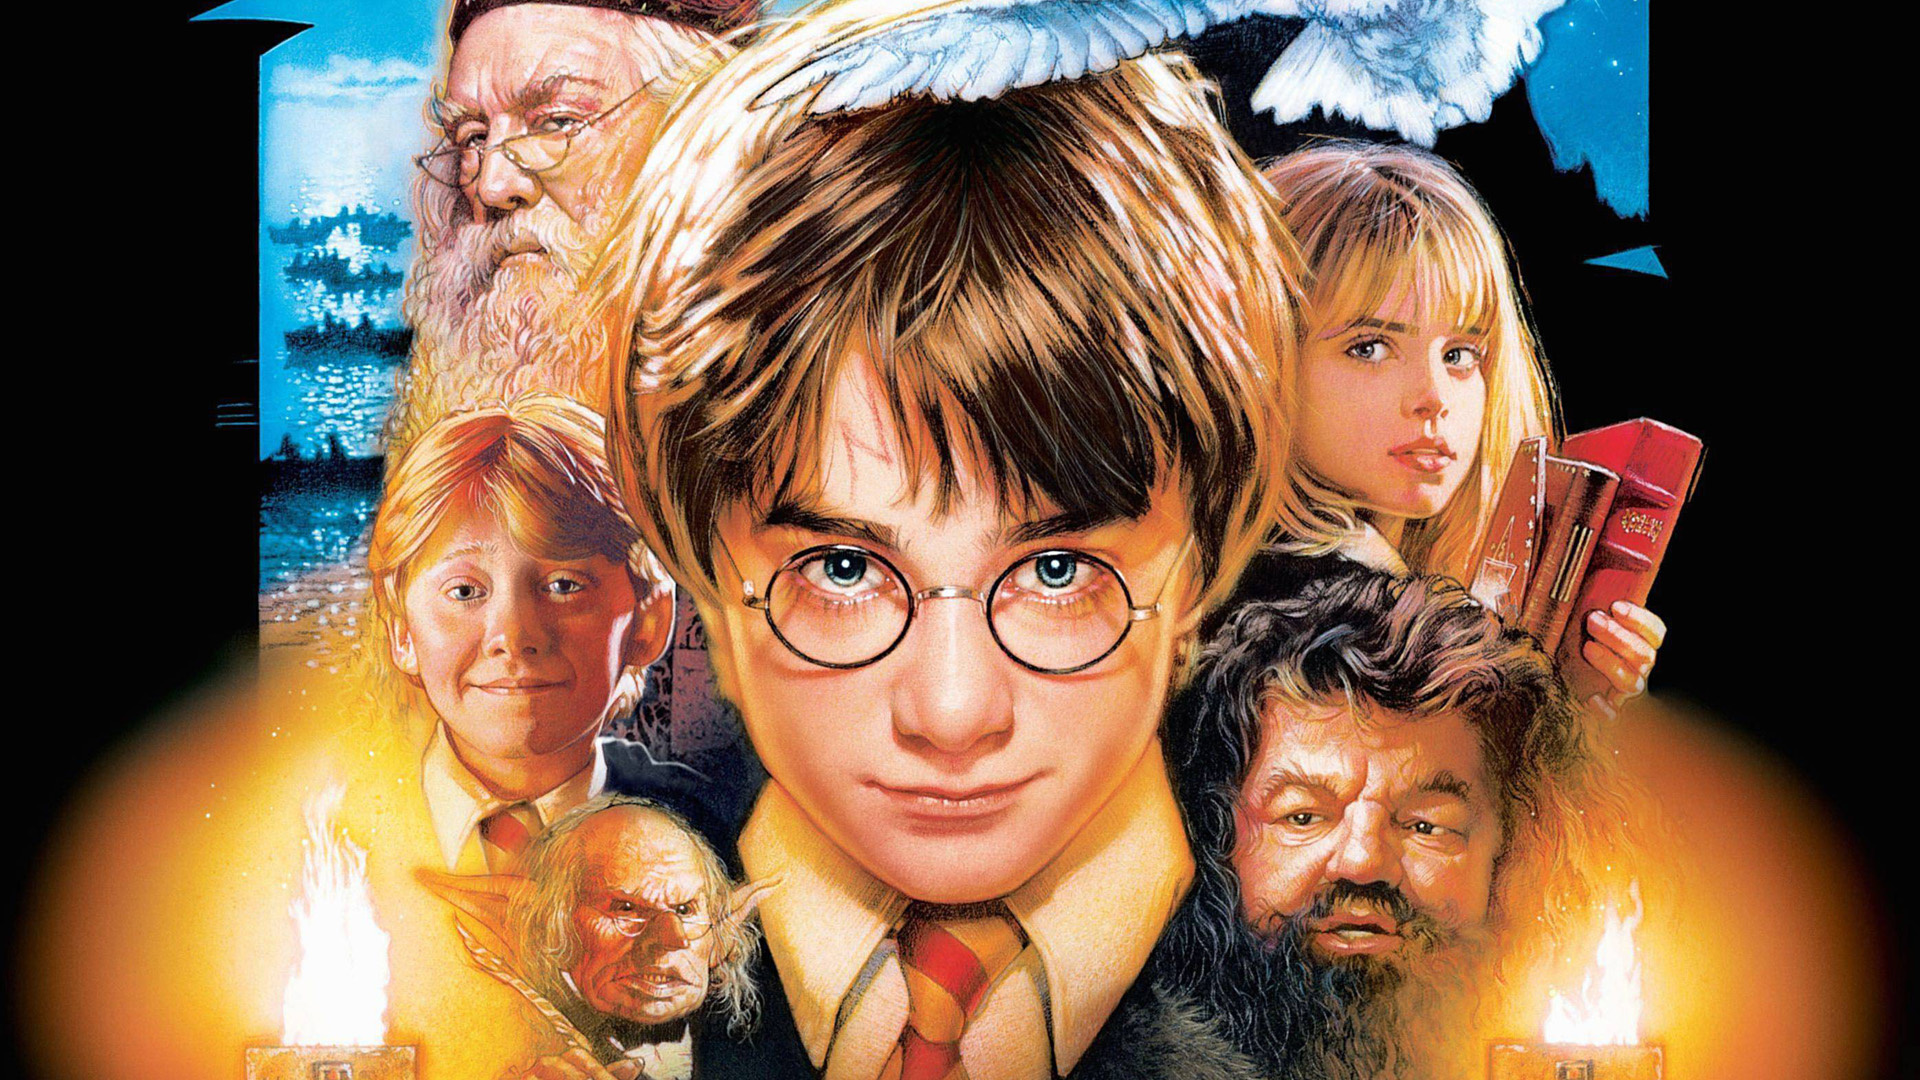 Harry Potter: Years 1-4